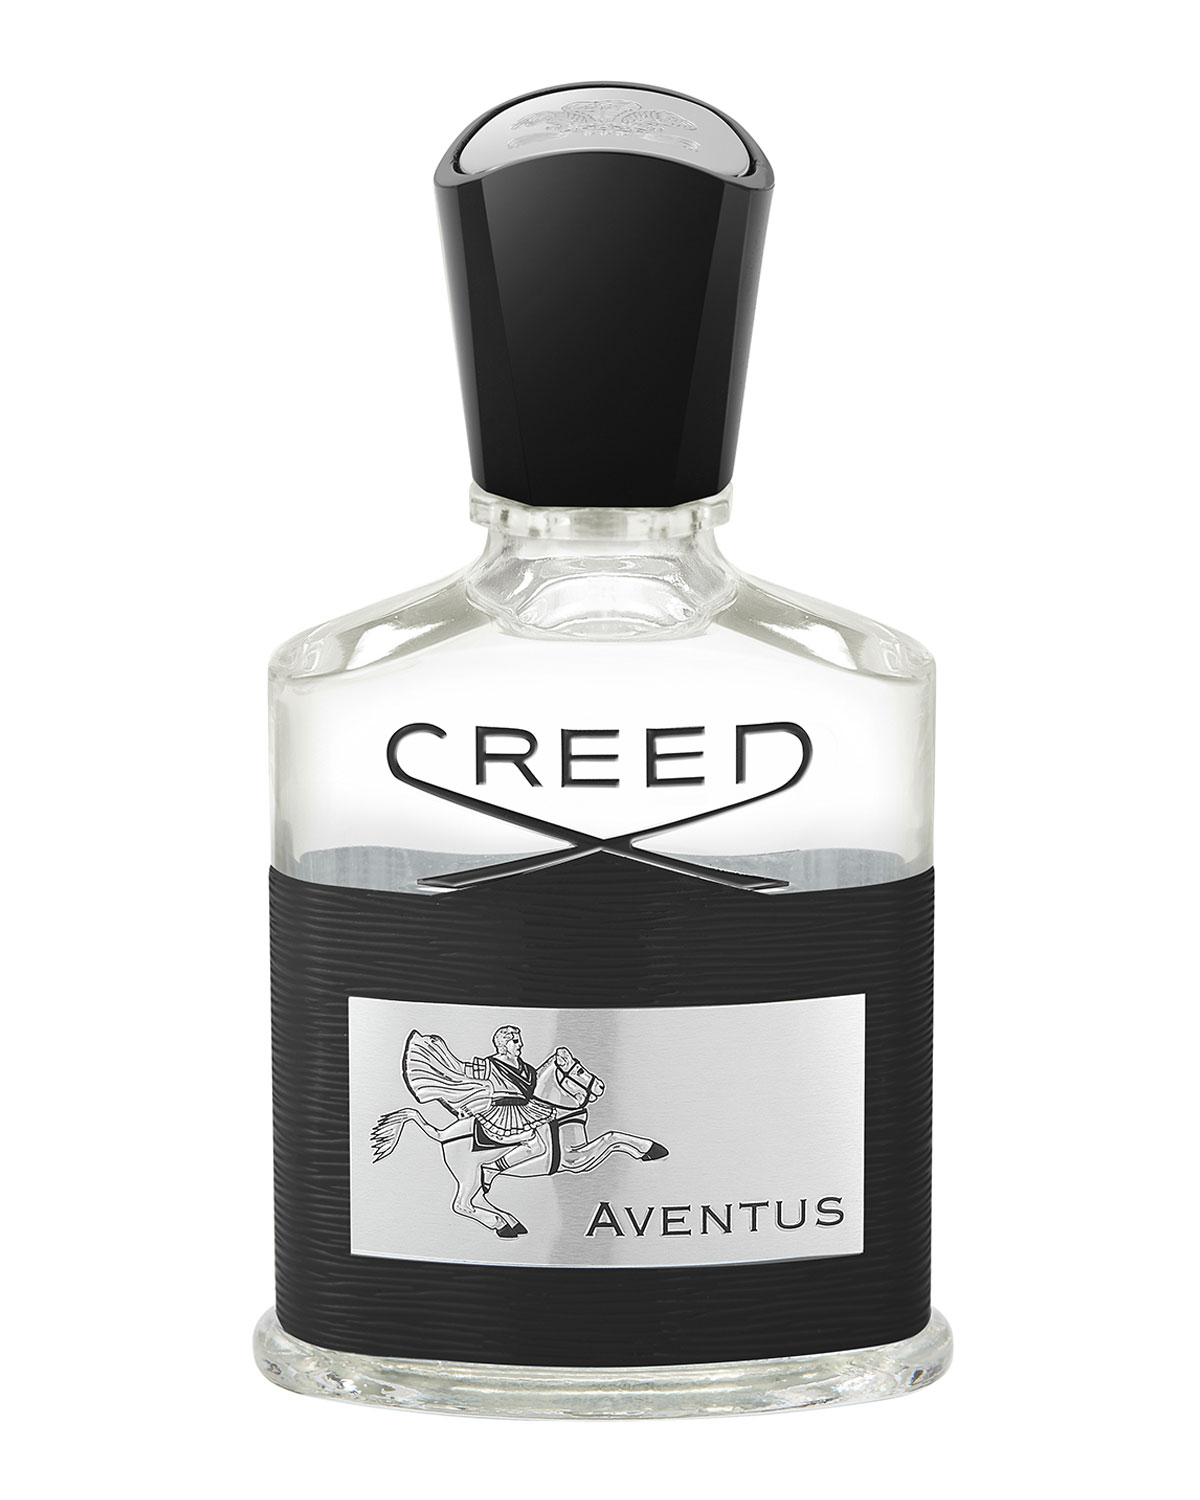 Creed Aventus 17 Oz 50 Ml Neiman Marcus